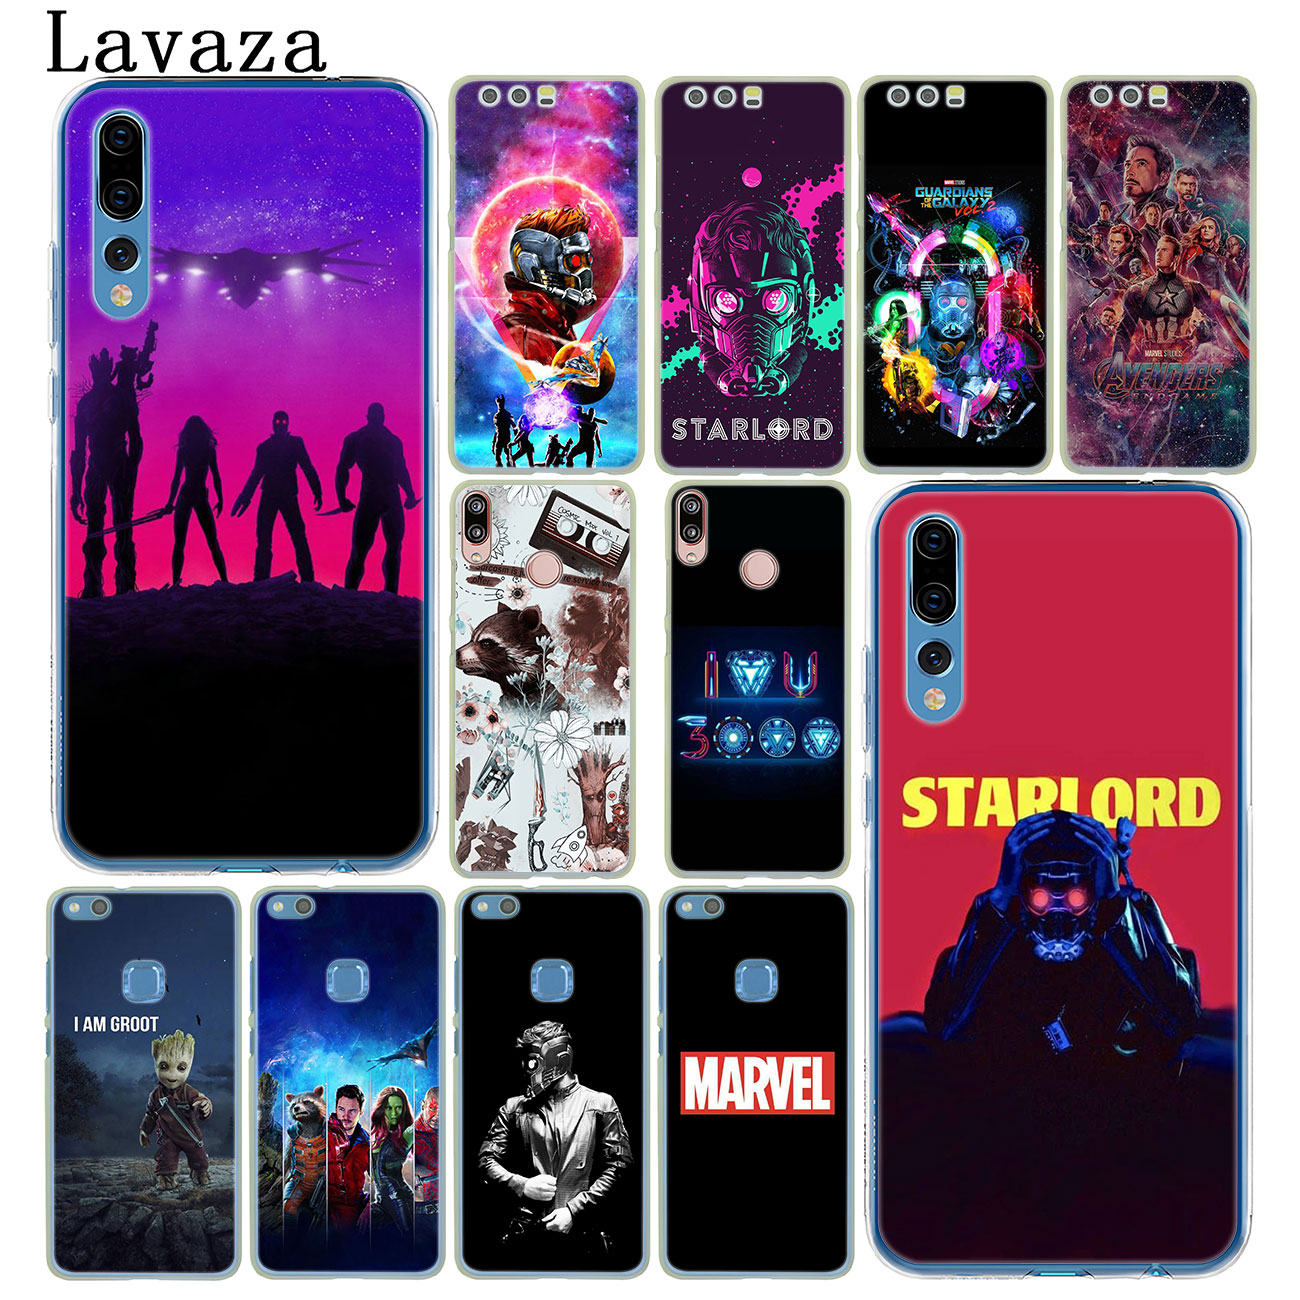 Guardians of the for Galaxy <font><b>Marvel</b></font> Phone <font><b>Case</b></font> for <font><b>Huawei</b></font> Y9 <font><b>Y7</b></font> Y6 Prime 2018 <font><b>2019</b></font> Honor 20 10 8 8C 8X 9X 9 Lite 7C 7X 7A Pro image